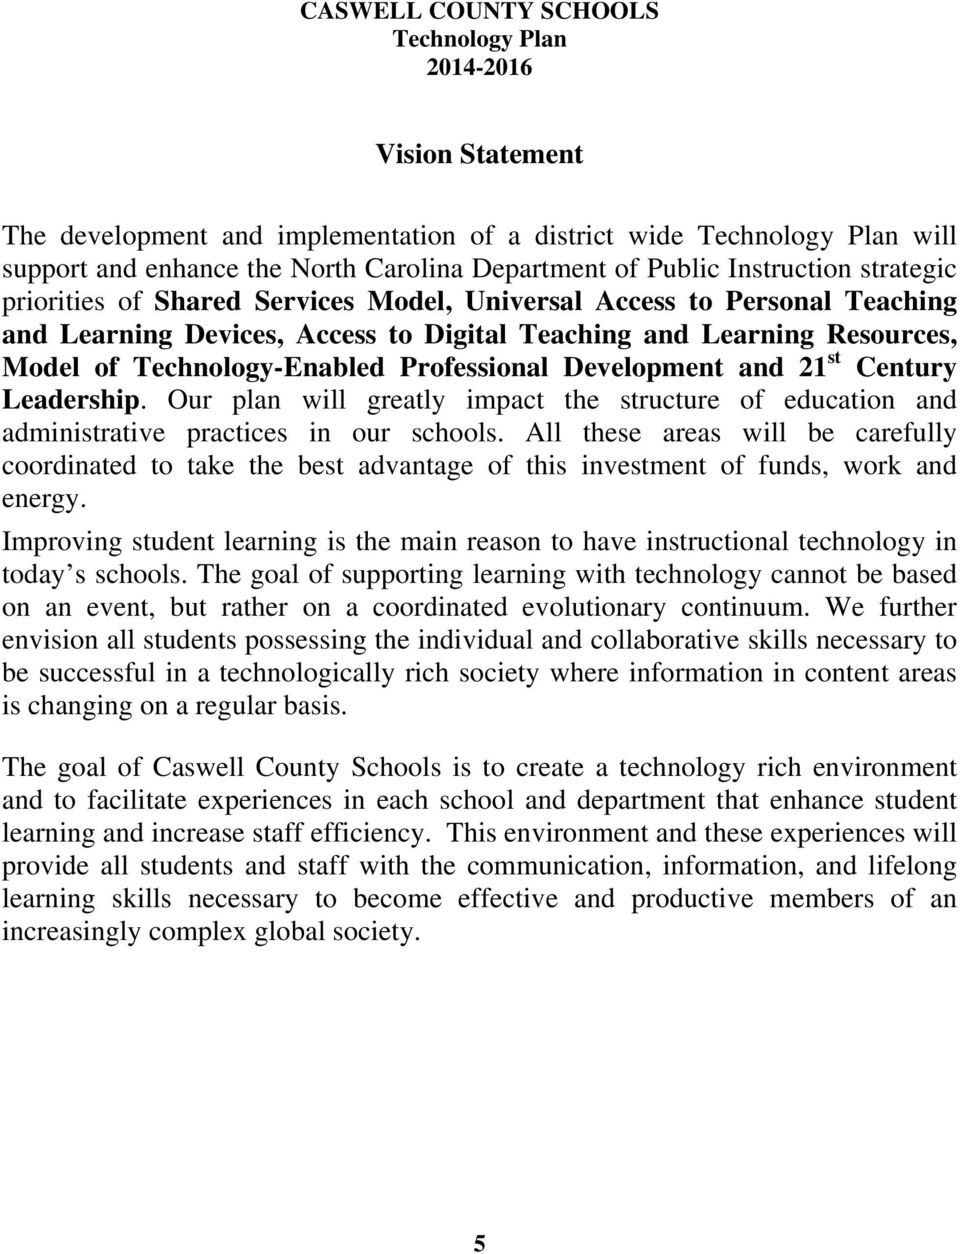 Technology-Enabled Professional Development and 21 st Century Leadership. Our plan will greatly impact the structure of education and administrative practices in our schools.